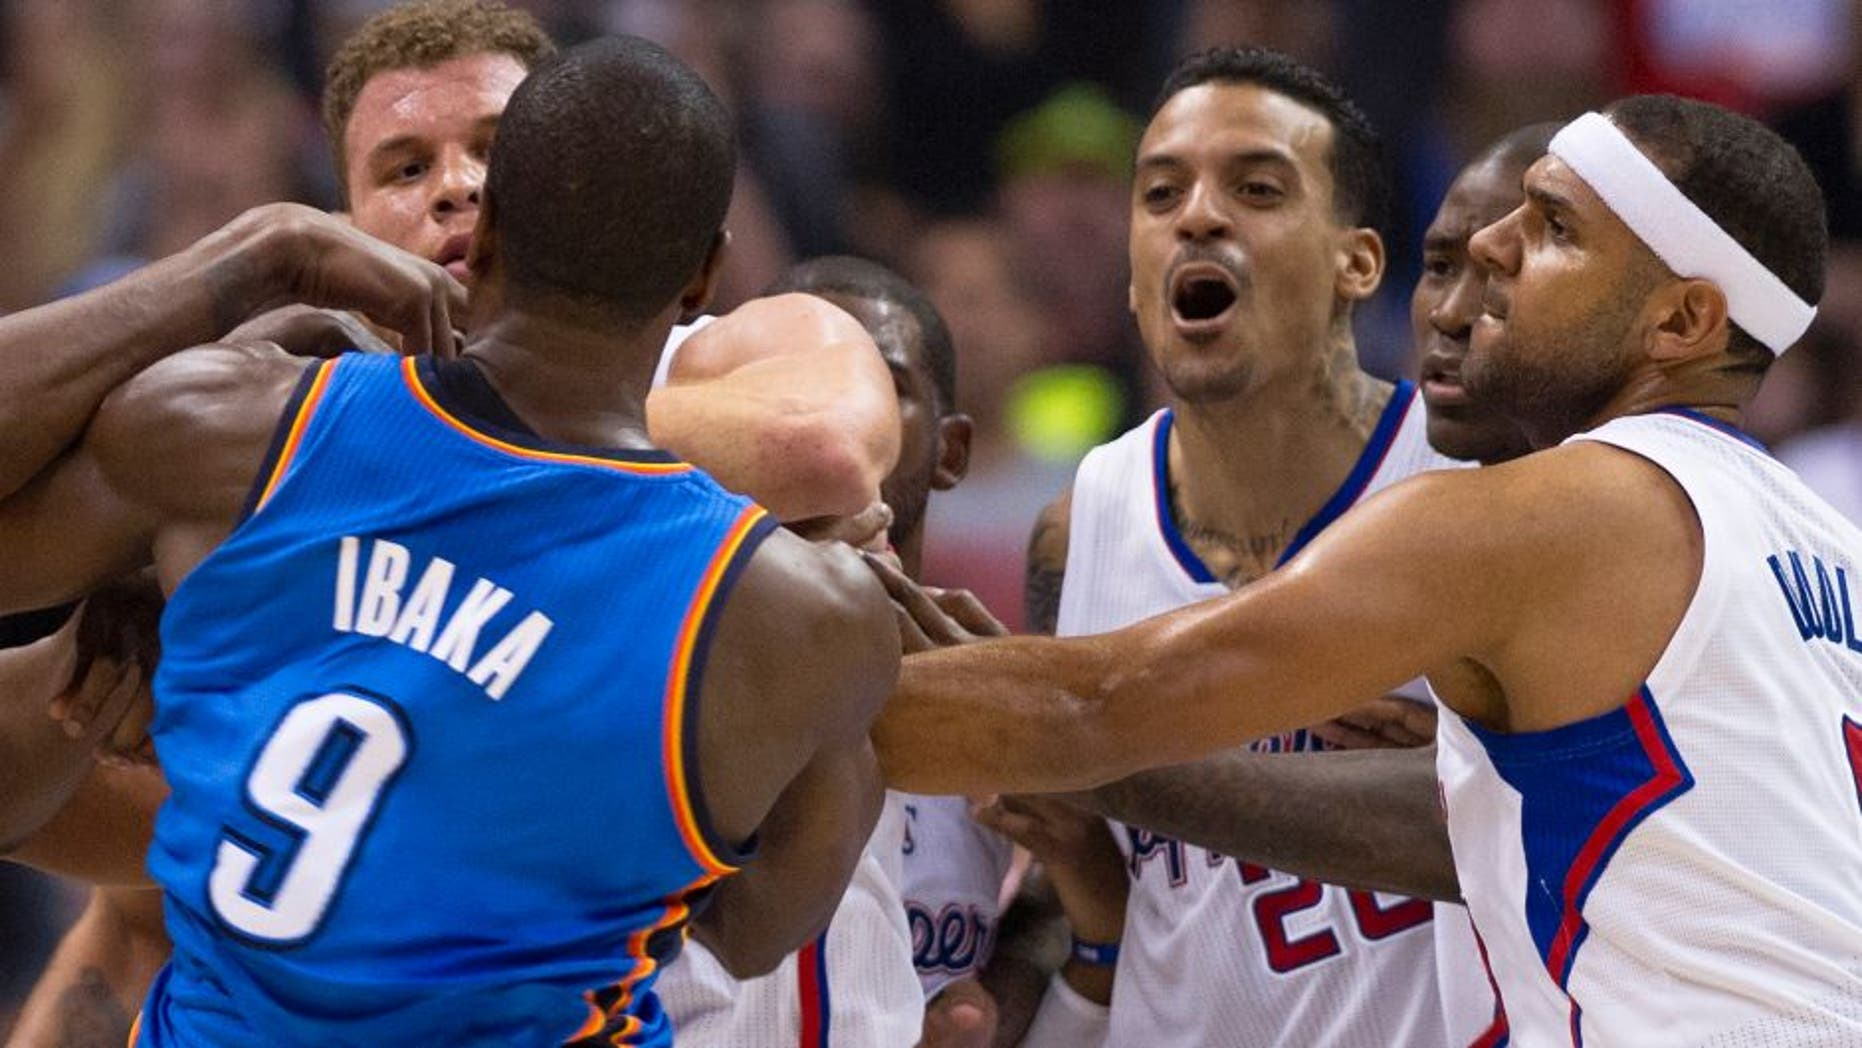 """Los Angeles Clippers Matt Barnes (2R) and Oklahoma City Thunder Serge Ibaka (L) skirmish in the final seconds of the second quarter, during NBA action, November 13, 2013 in Los Angeles, California. At far left is the Clippers Blake Griffin and at right is the Clippers Jared Dudley. The Los Angeles Times reported November 14, 2013 that in the final seconds of the second quarter of Wednesday's game between the Clippers and the Oklahoma City Thunder, Blake Griffin and Serge Ibaka got their arms entangled while trying to grab a rebound. They wrestled for a few seconds, then Matt Barnes intervened and shoved Ibaka, who responded by trying to push Barnes while apparently preparing to throw a punch. After Barnes left the court, he sent this tweet from the locker room, which was later taken down because it included an epithet and a curse word: """"I love my teammates like family, but I'm DONE standing up for these ...! All this ... does is cost me money."""" Doc Rivers said he was disappointed by Barnes' words after the Clippers secured a 111-103 victory at Staples Center. AFP PHOTO / Robyn Beck (Photo credit should read ROBYN BECK/AFP/Getty Images)"""